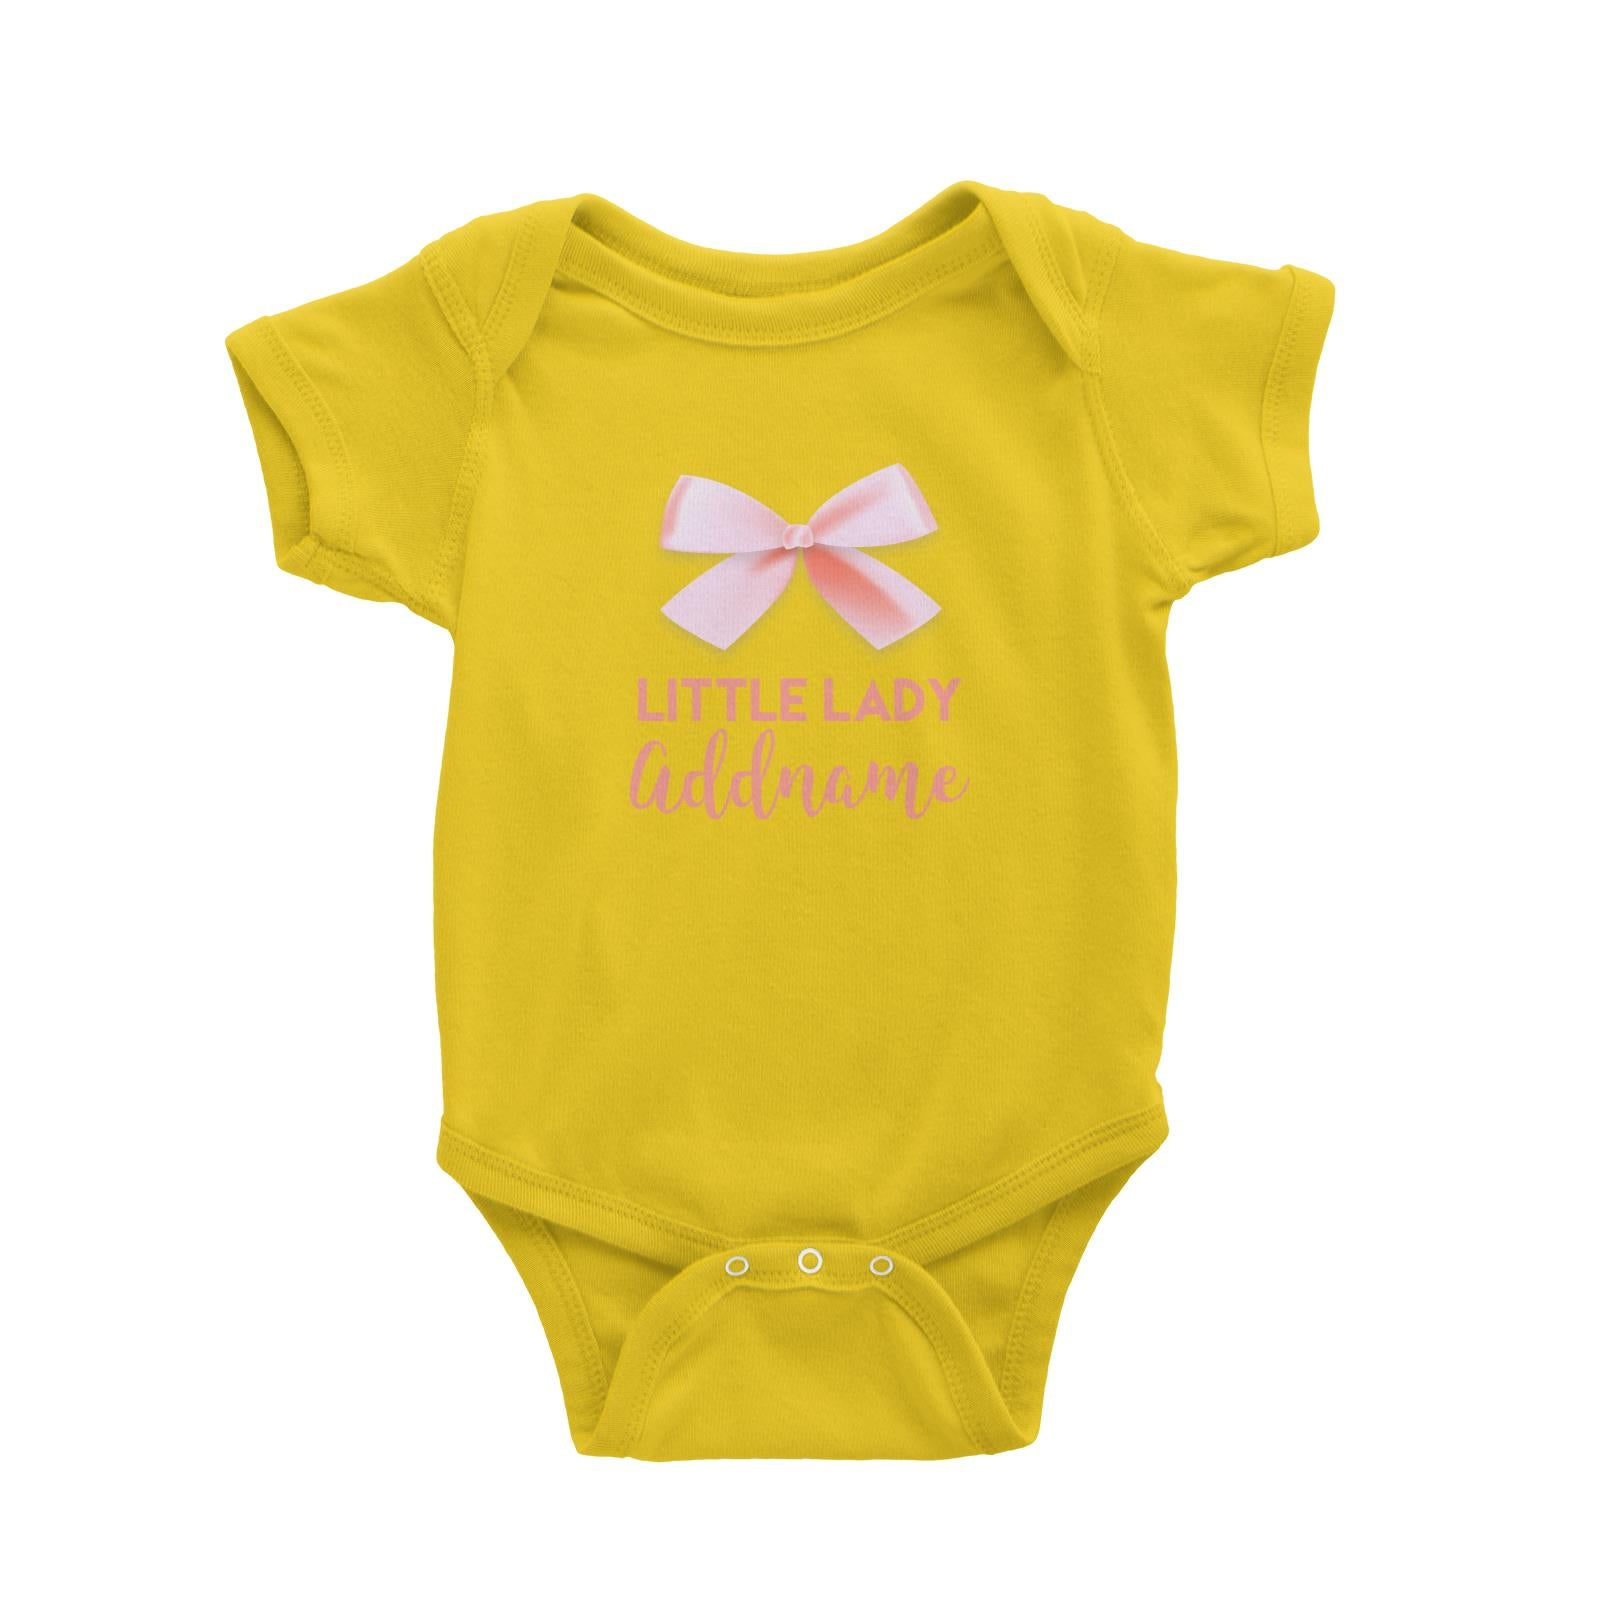 Pink Ribbon Little Lady Addname Baby Romper Personalizable Designs Basic Newborn